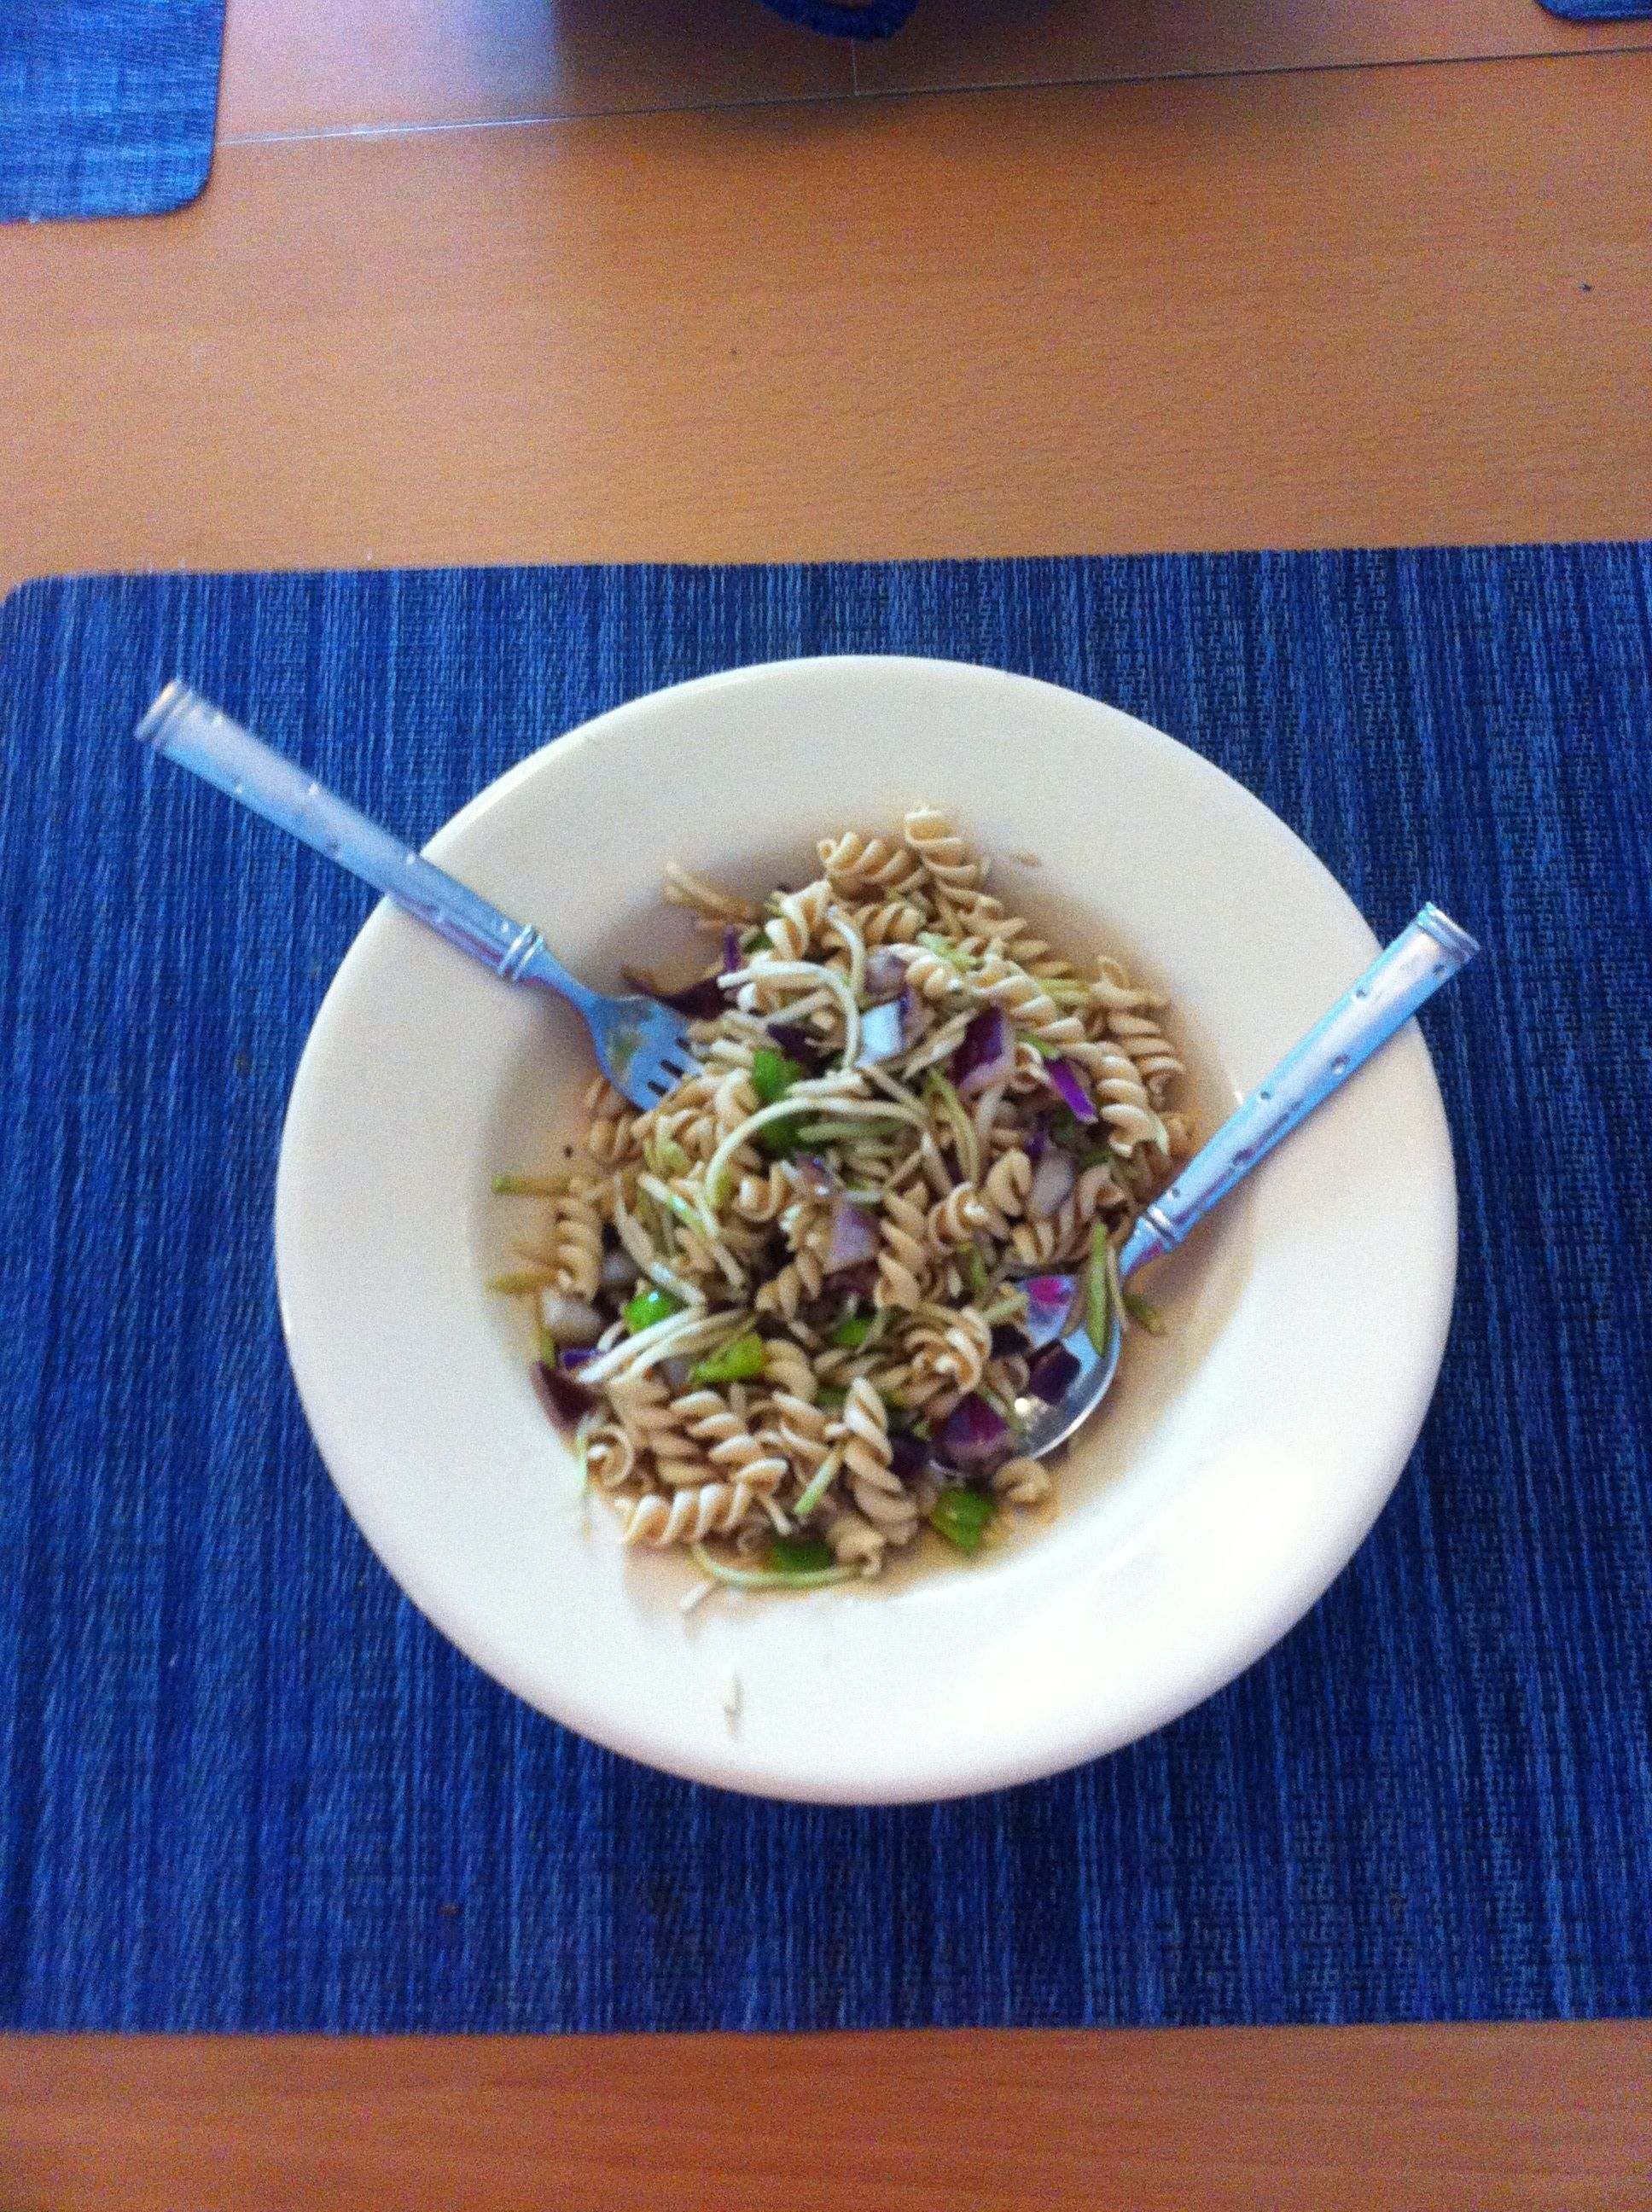 Ideal Protein Asian Pasta Salad!  1 C Broccoli Slaw 1 C red onion, green onion, mild pepper, chopped 1 Package Ideal Protein Rotini, cooked, drained, and rinsed 1 Tbsp low sodium soy sauce 2 tsp olive oil 1/2 tsp chili paste  Mix all ingredients.  Serve chilled. One of my favorite IP lunches! #idealproteinrecipesphase1dinner